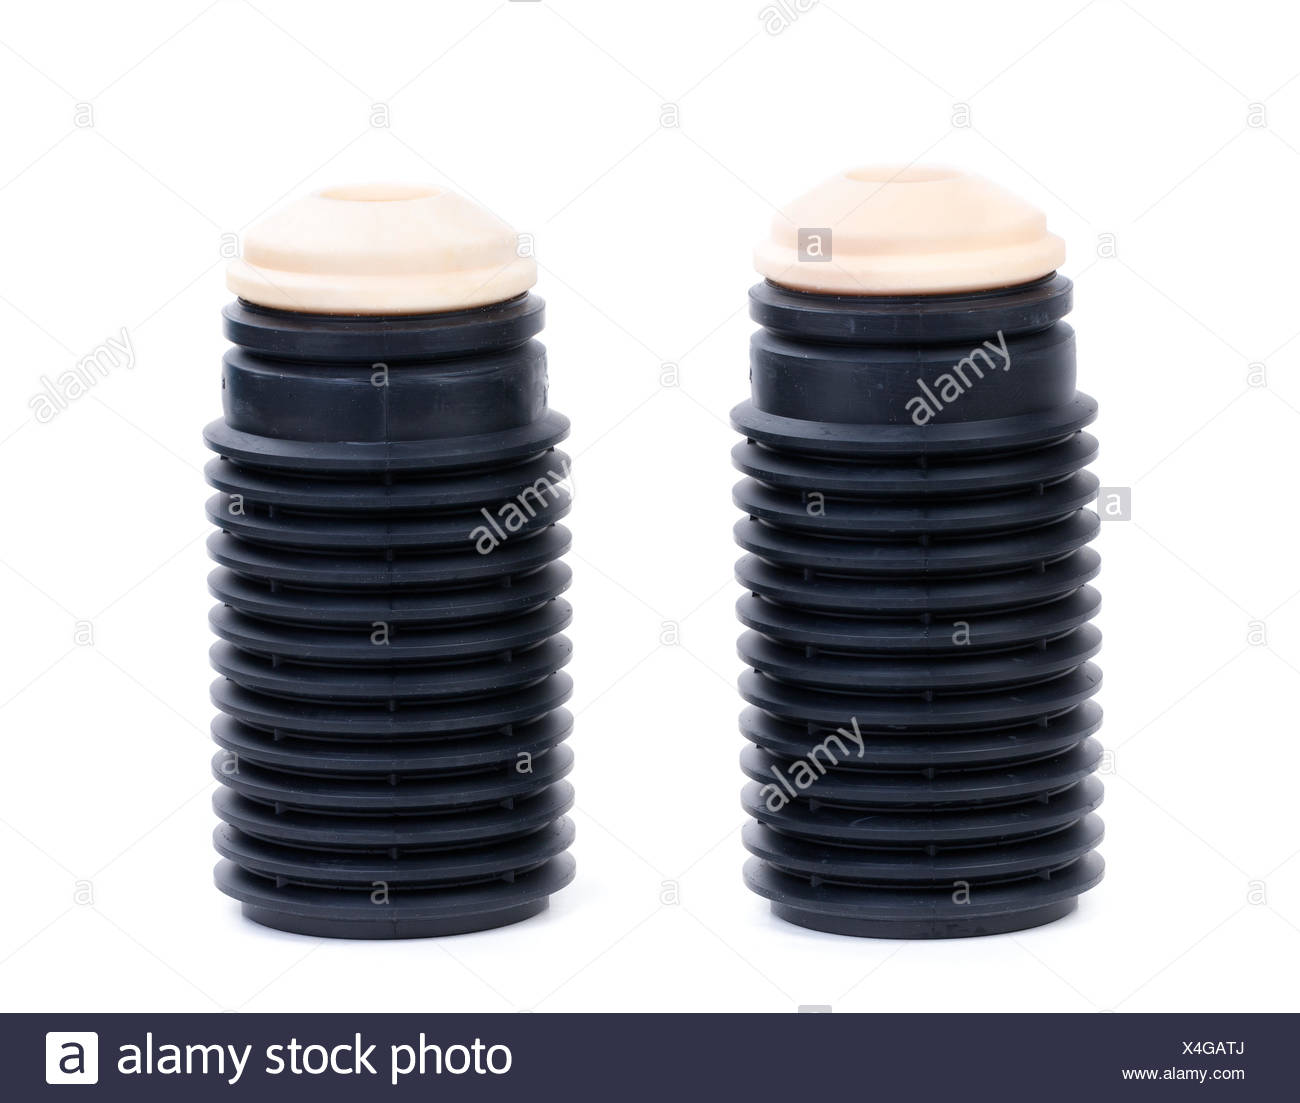 Anther set for shock absorbers. Stock Photo